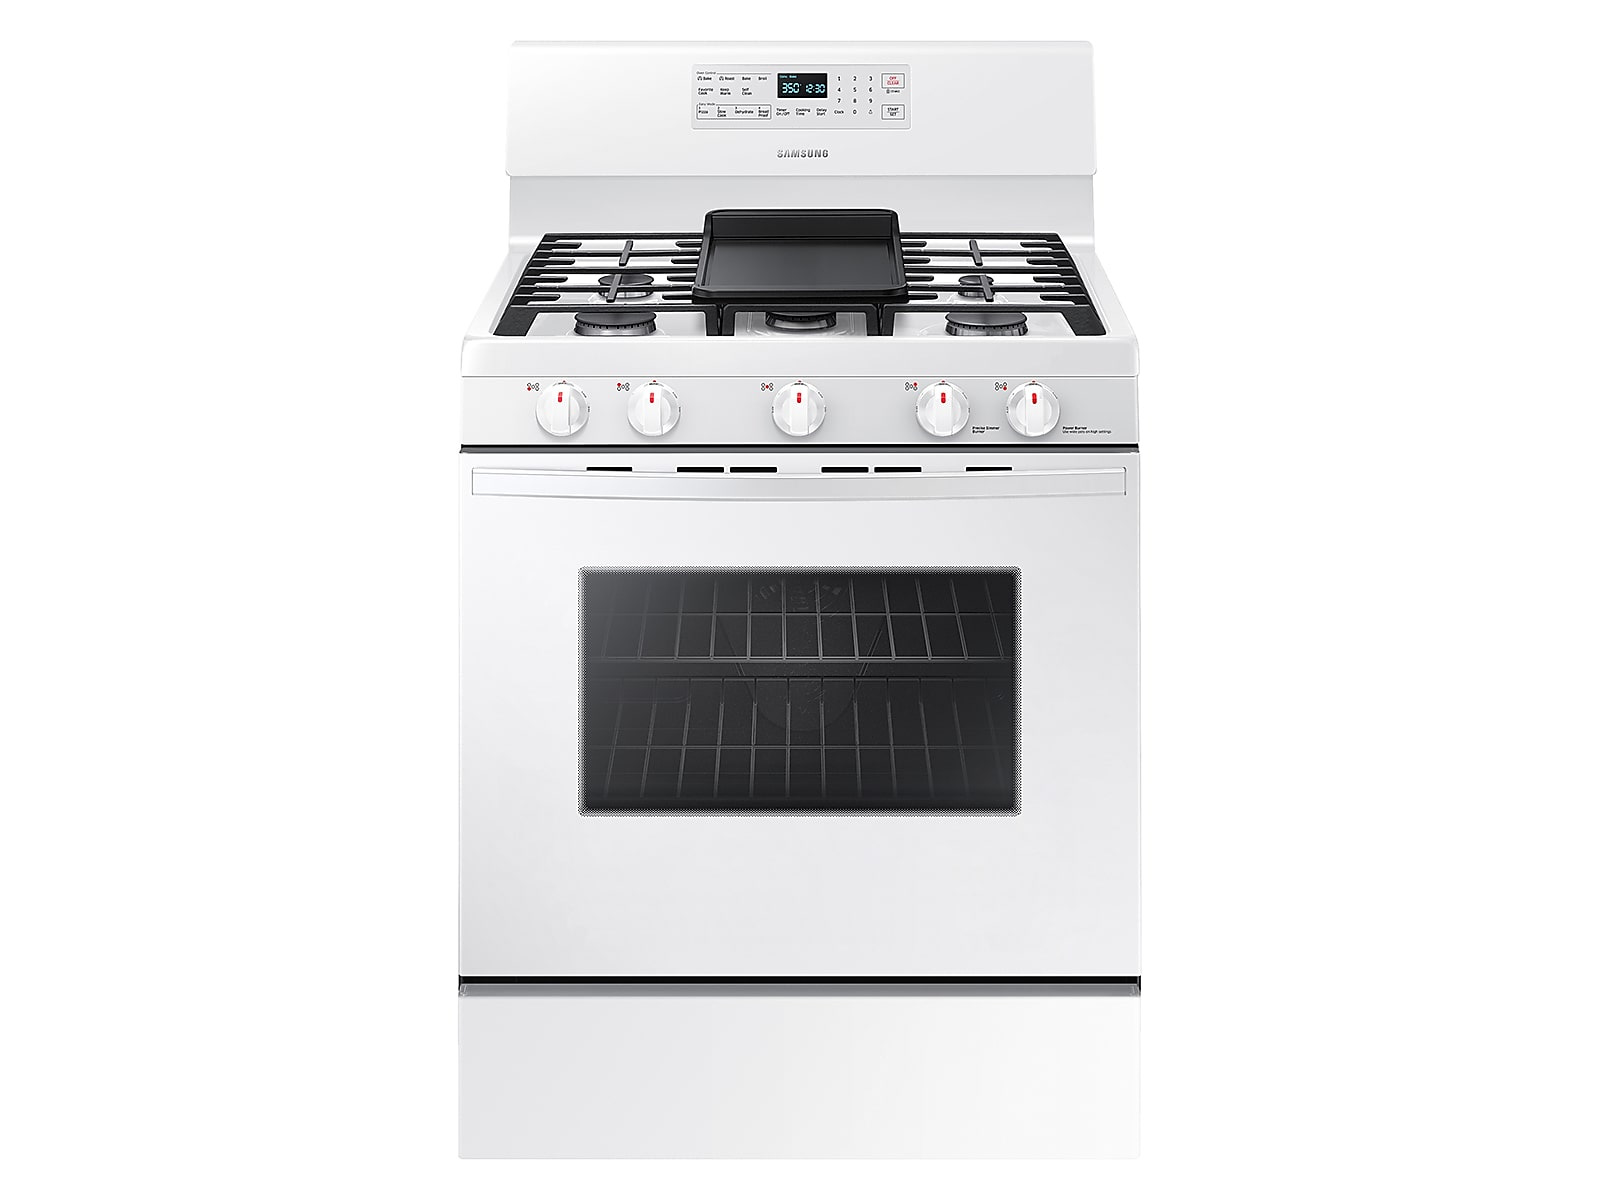 Samsung 5.8 cu. ft. Freestanding Gas Range with Convection in White(NX58T5601SW/AA)